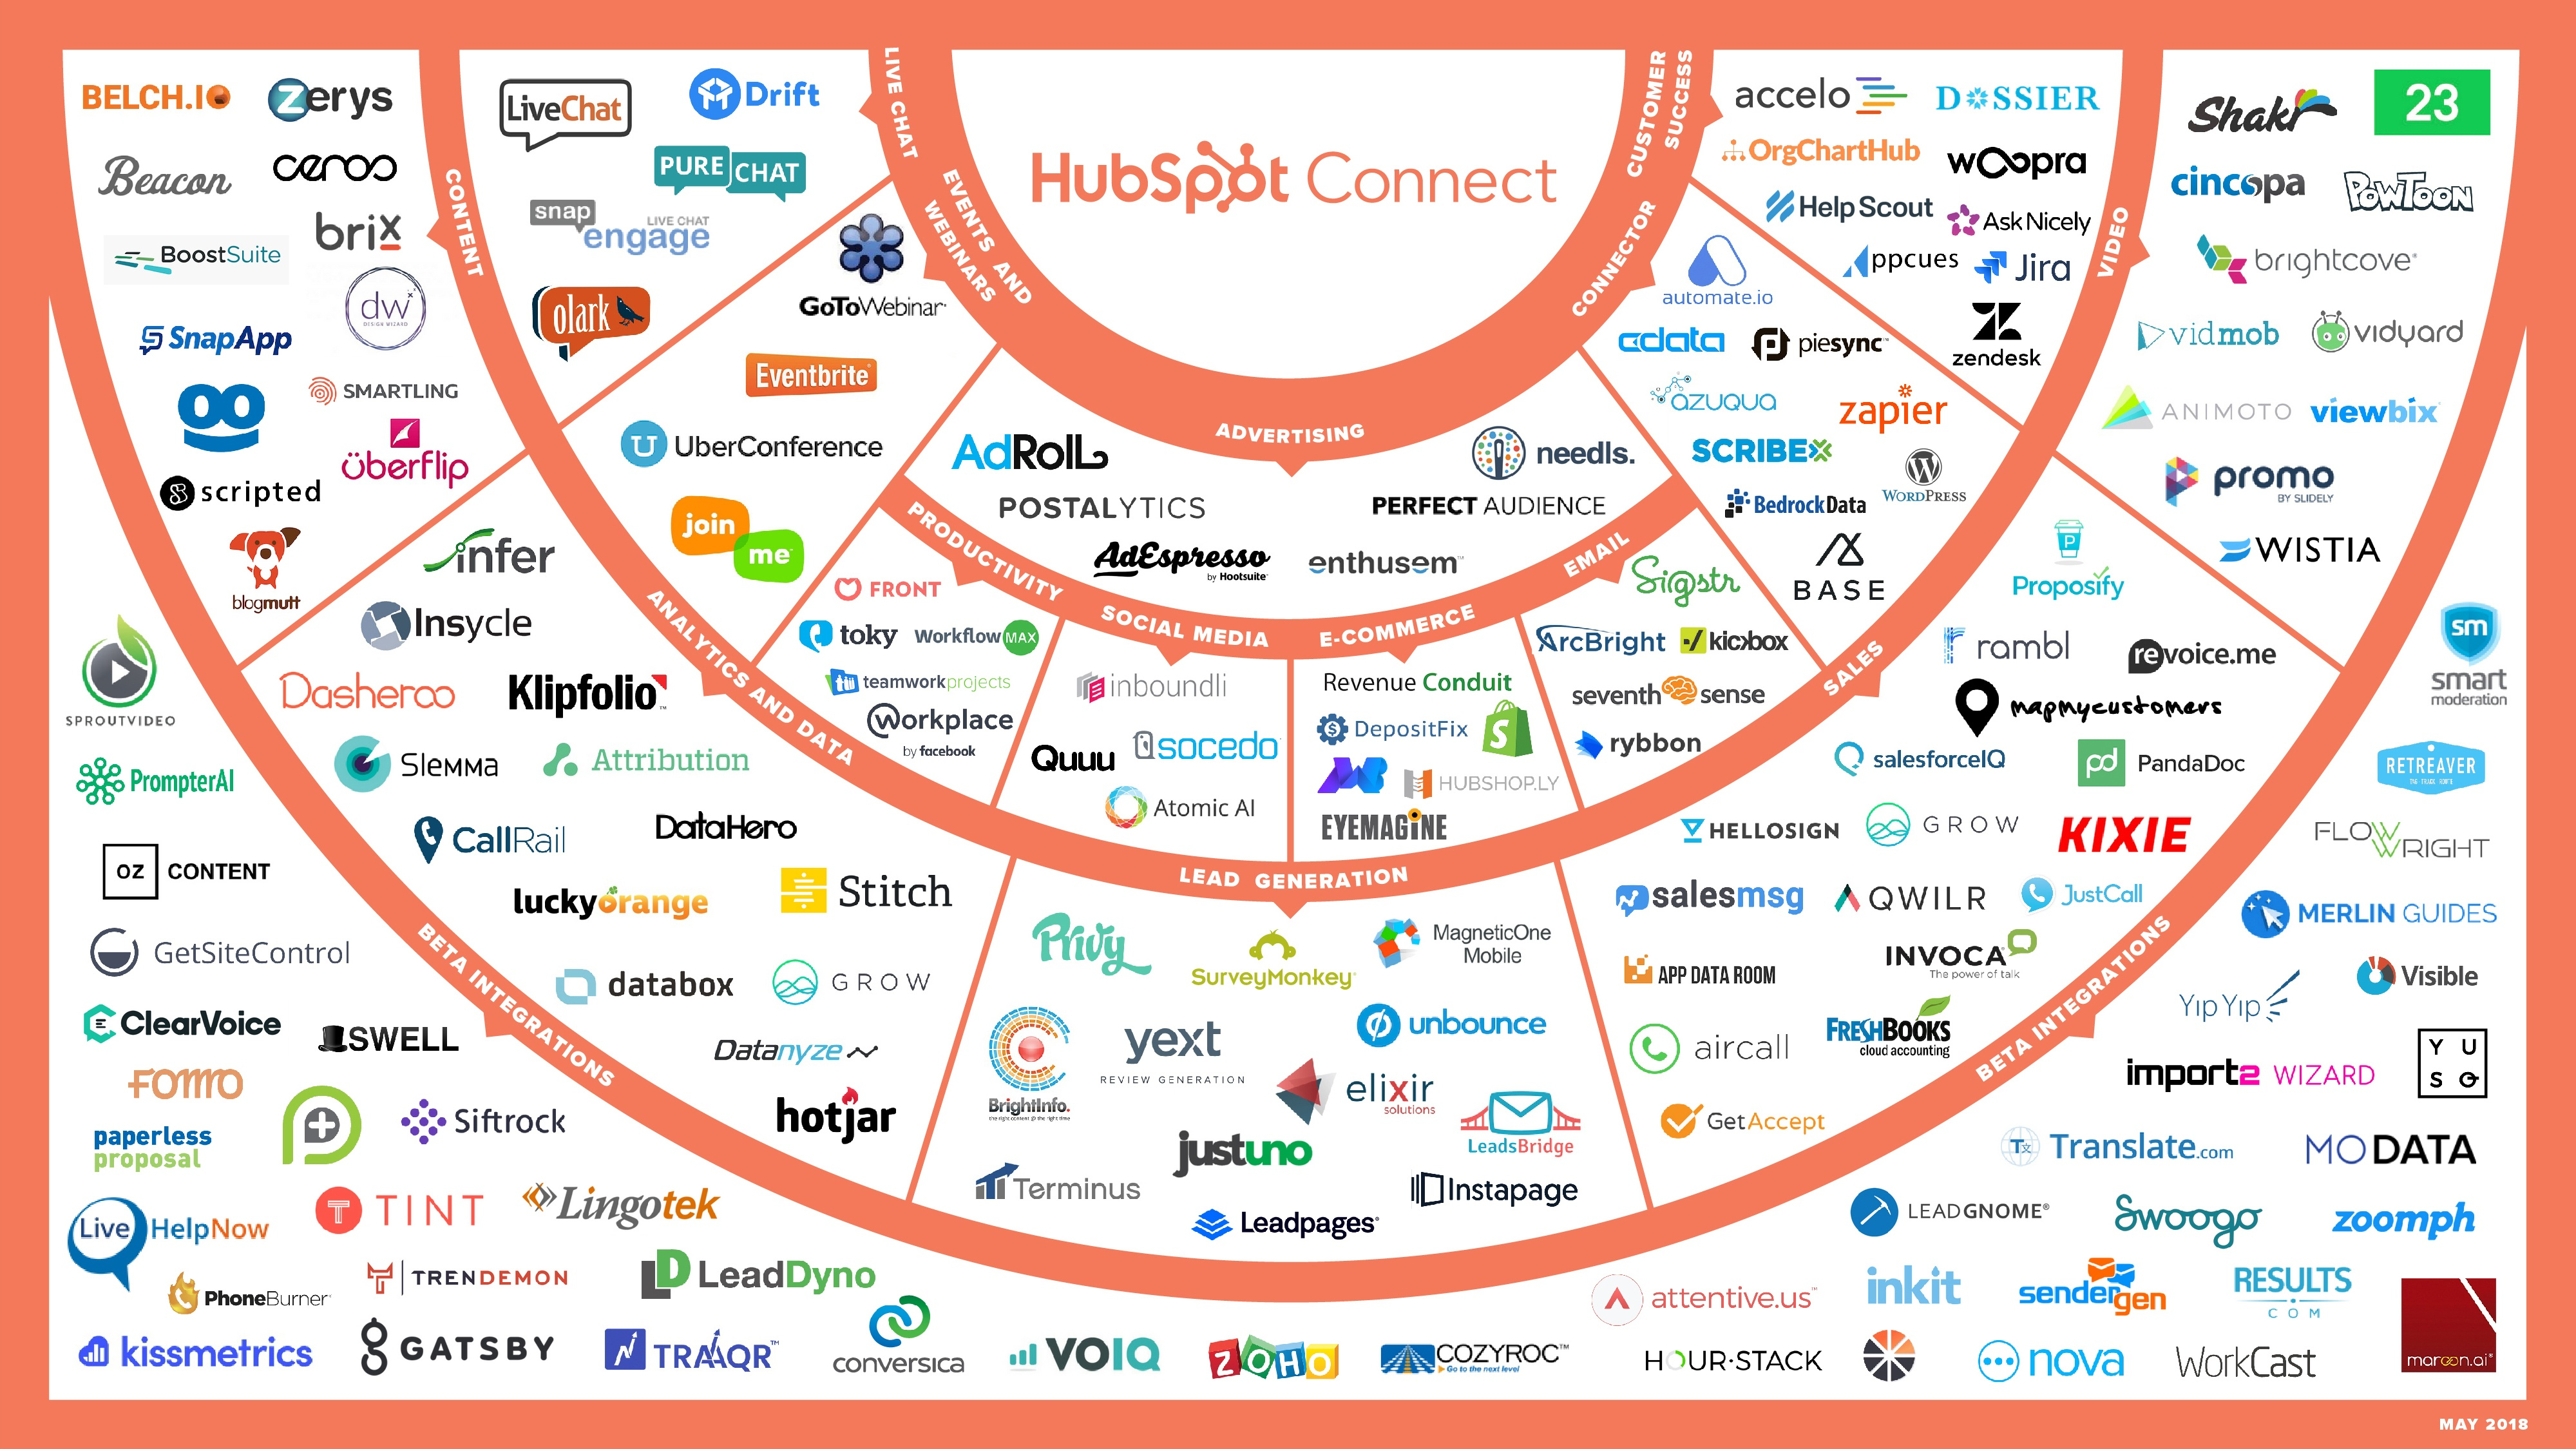 May 2018: New HubSpot Product Integrations This Month